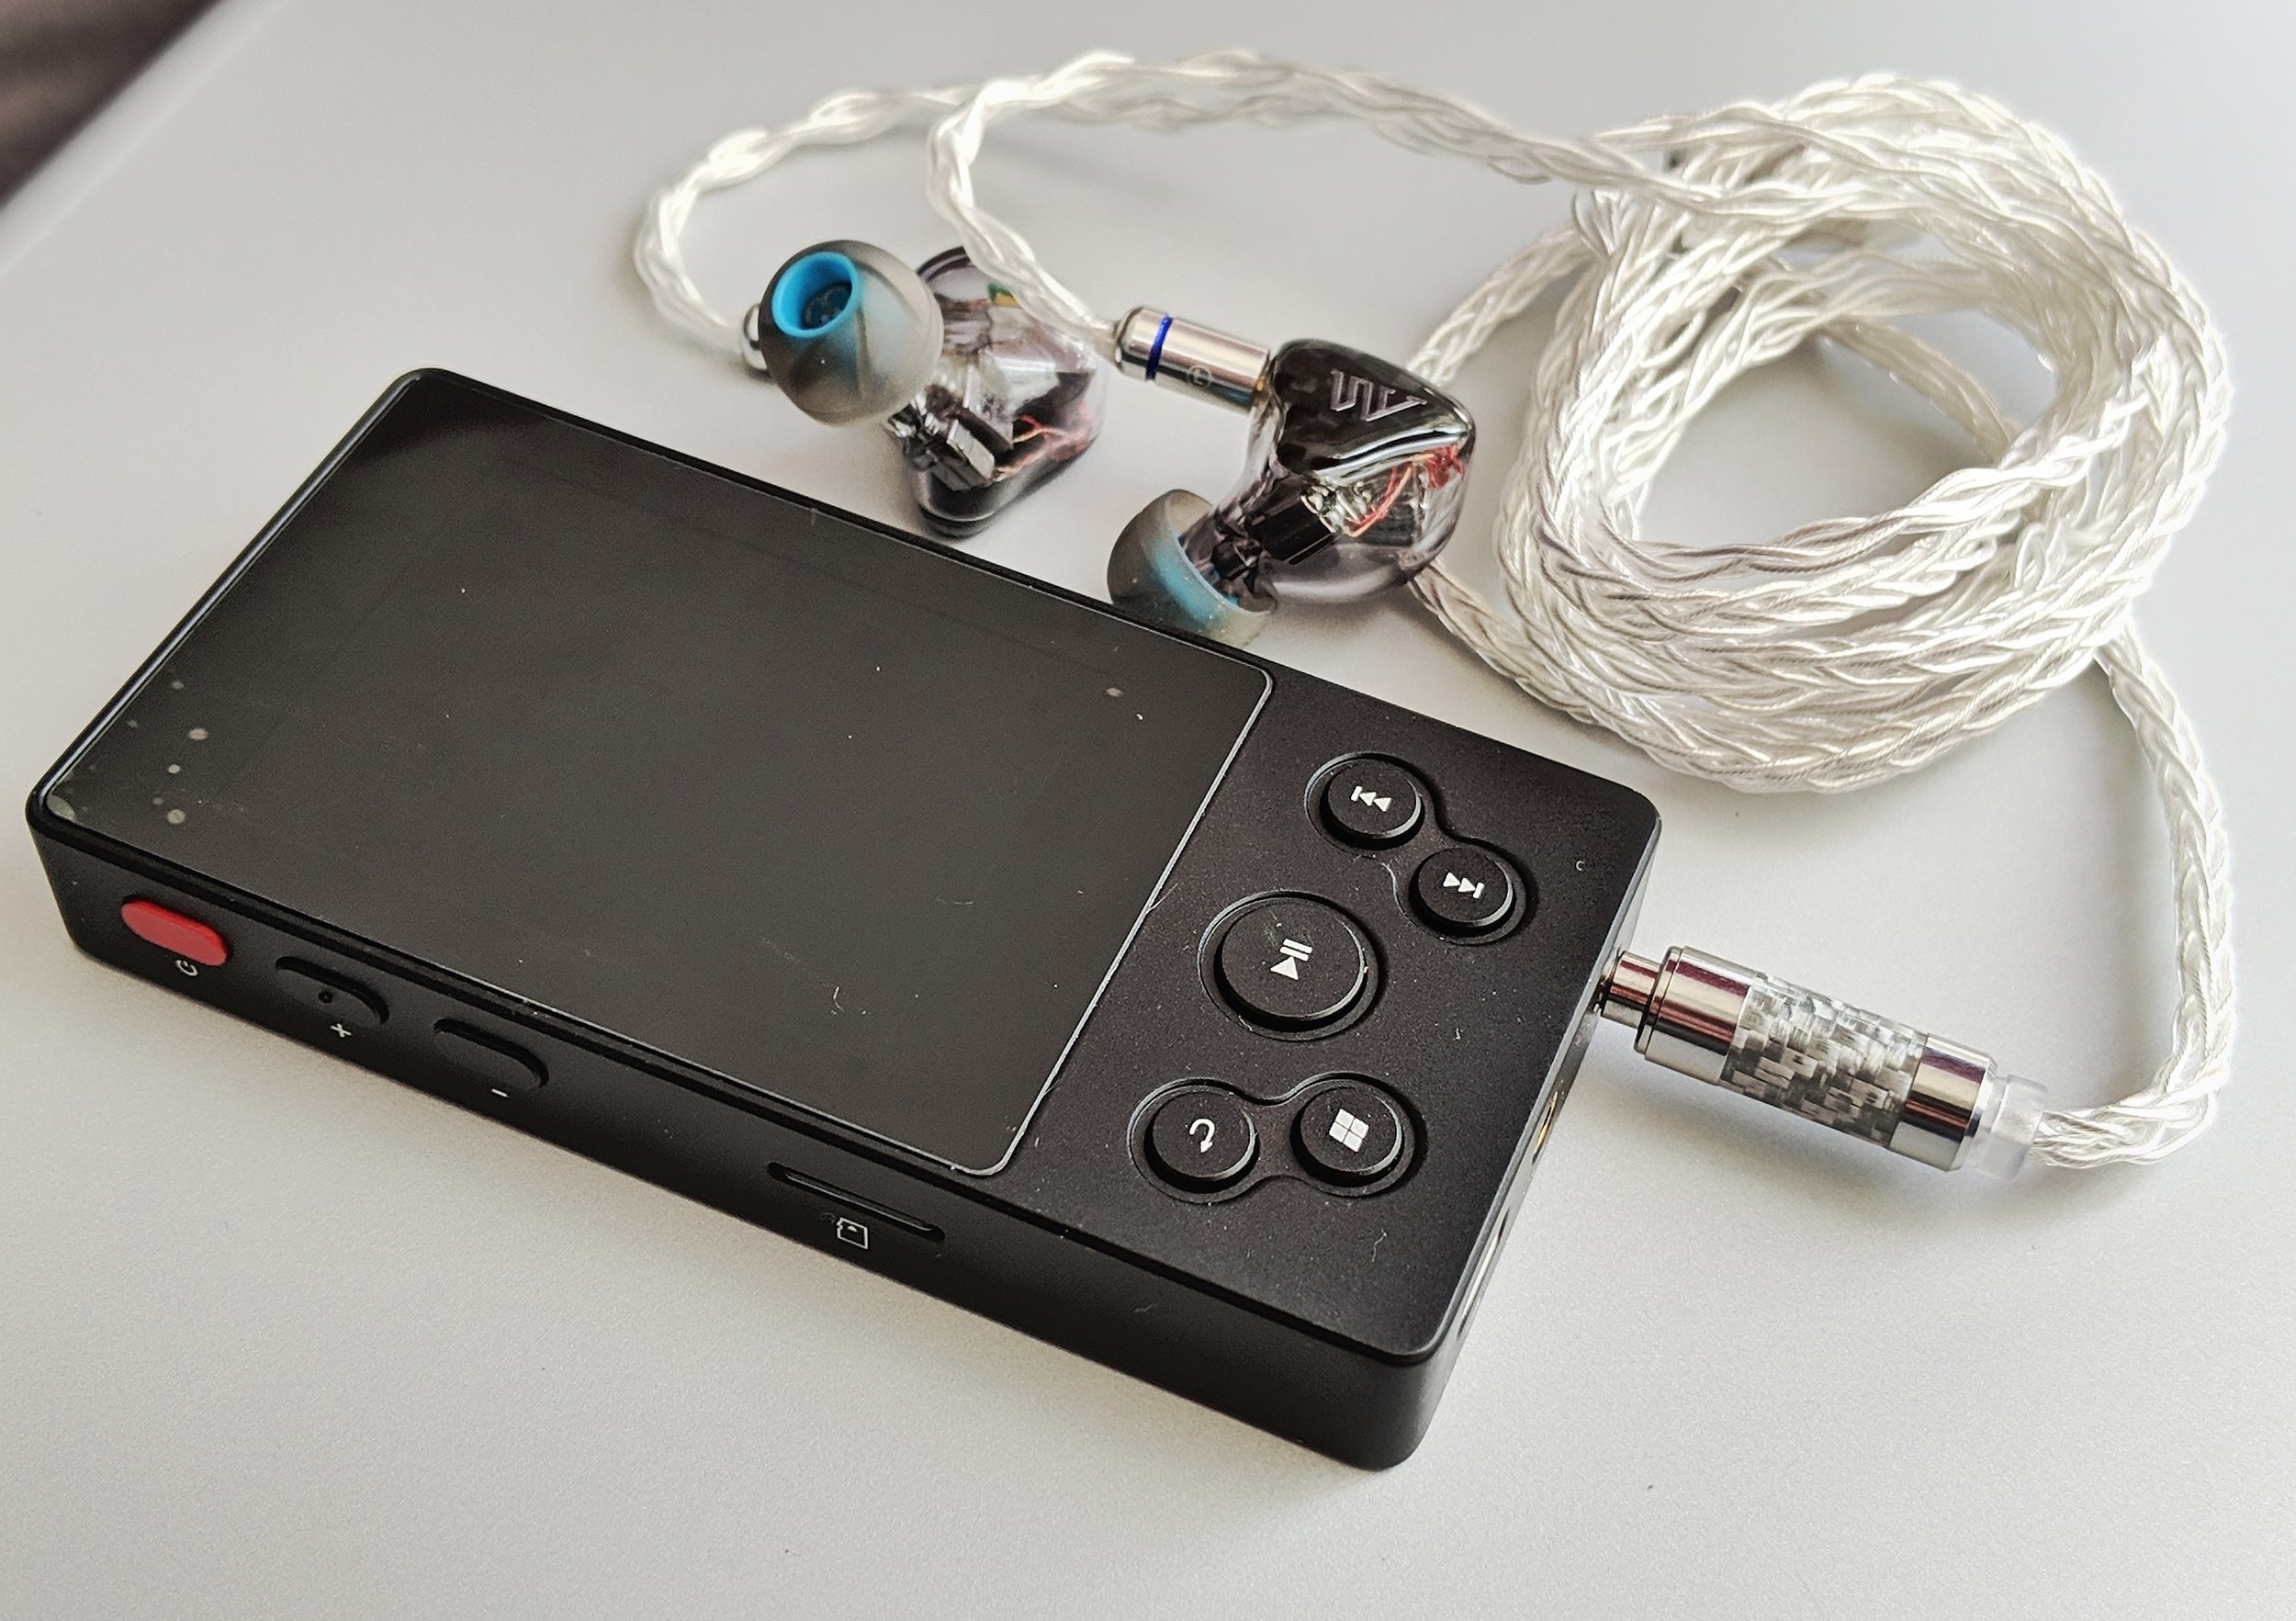 Xduoo X3 II music player review with the Fearless Audio S8P earphones.